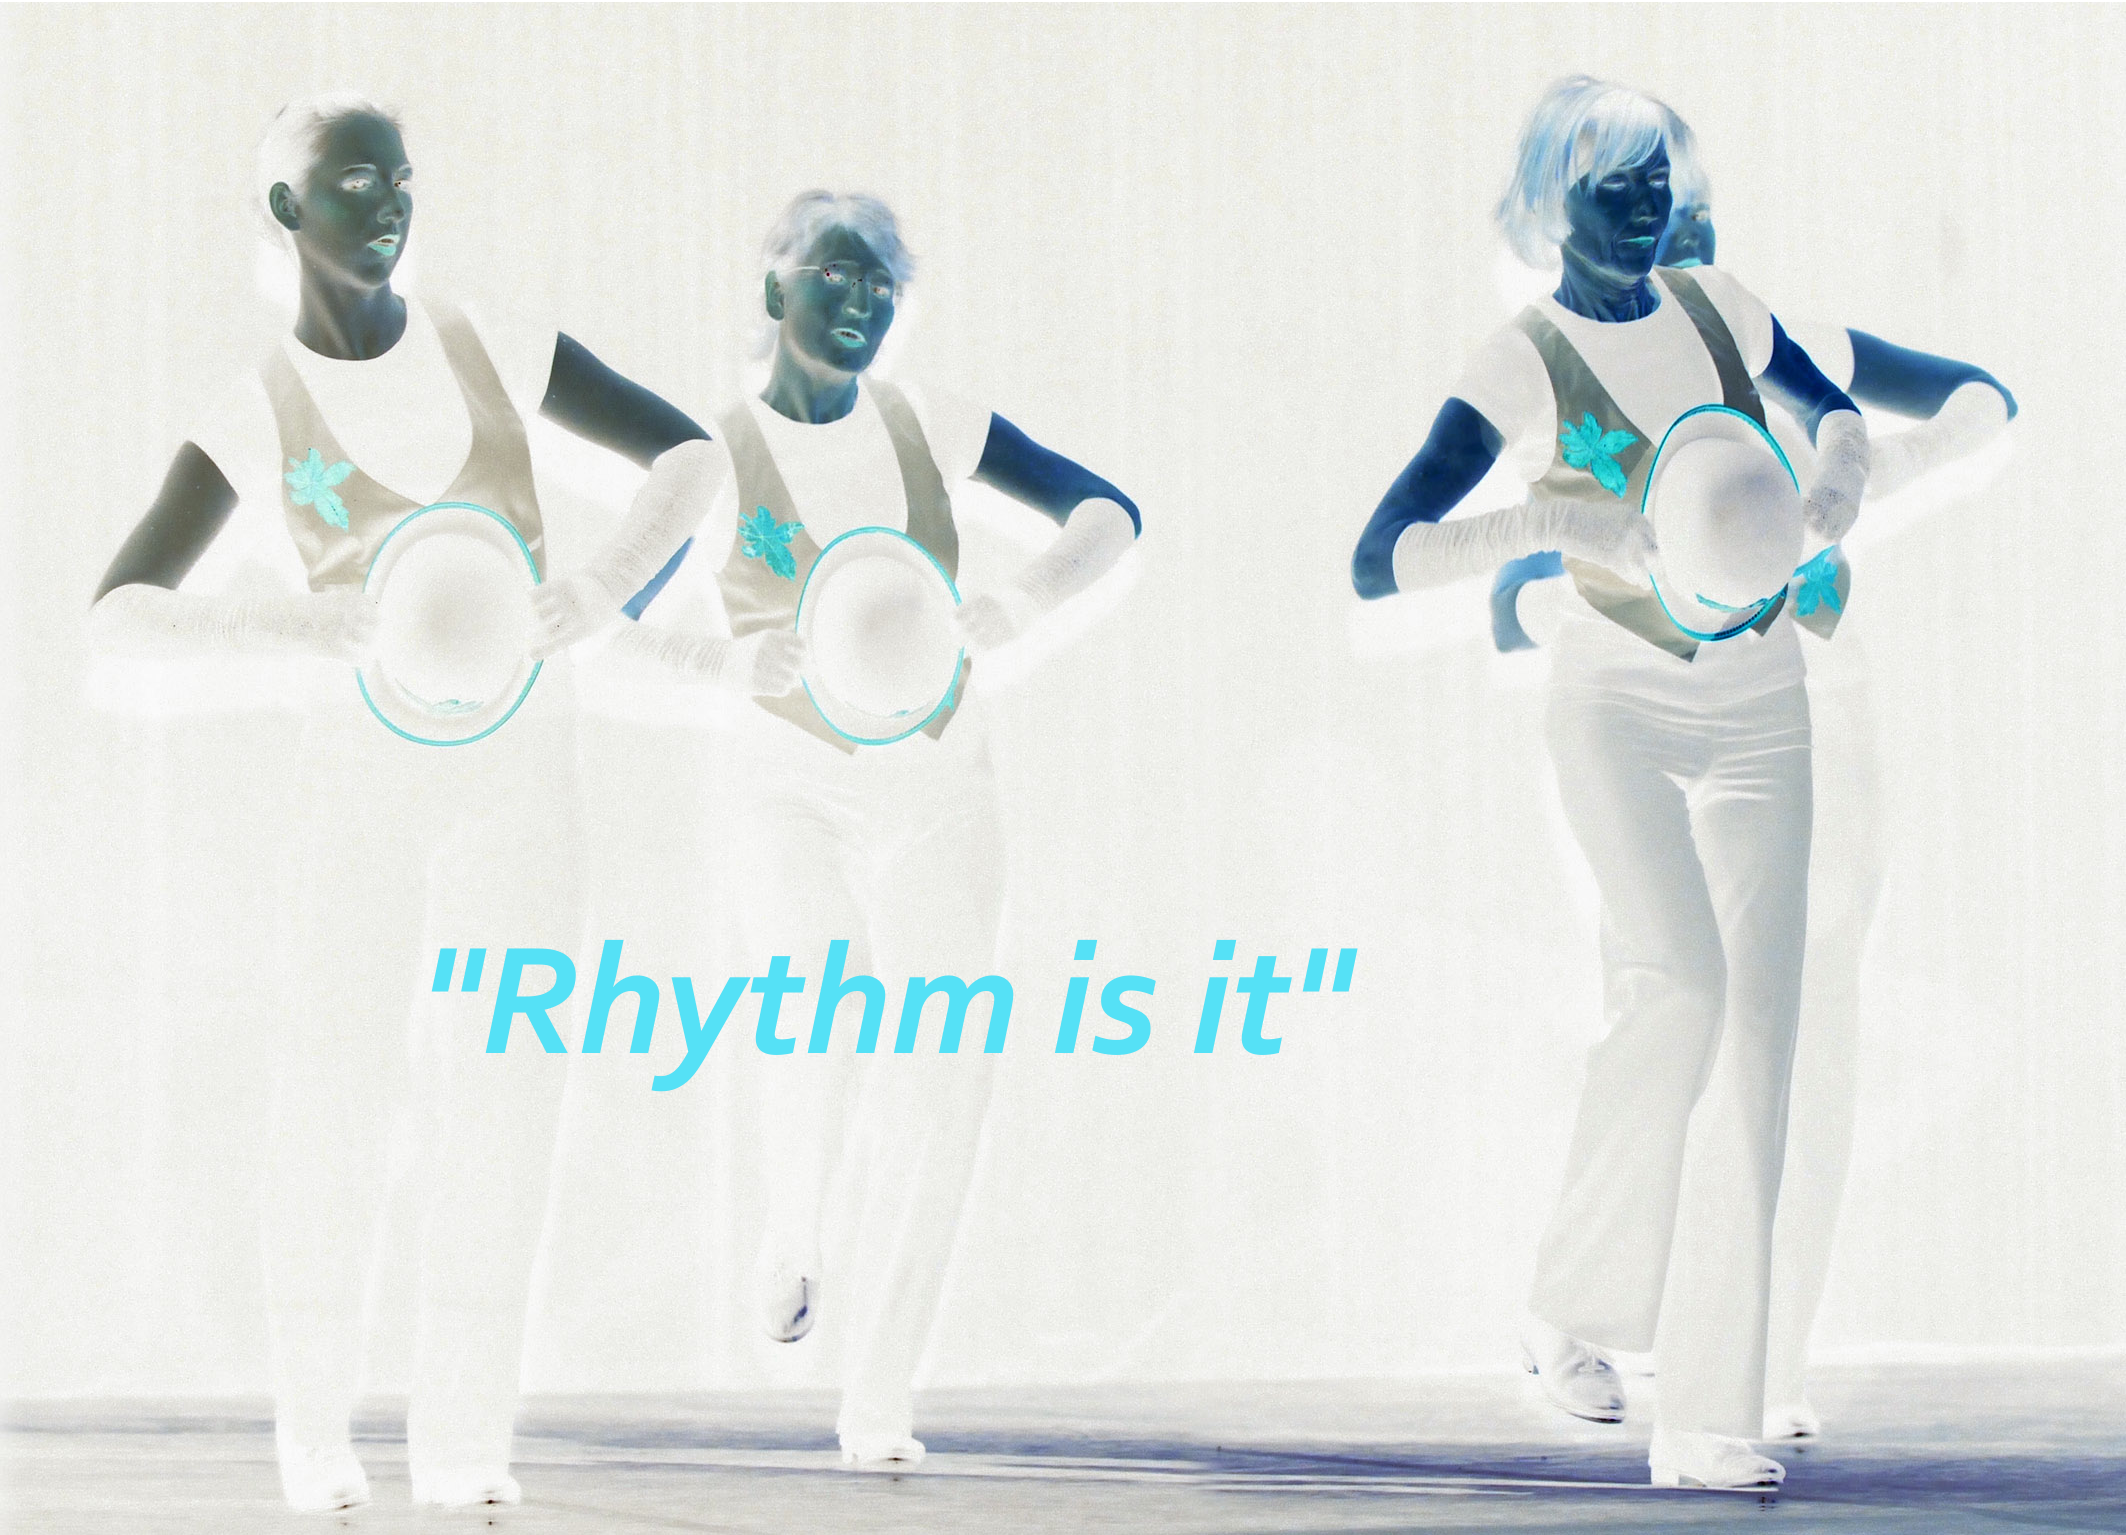 Stepp Rhythm is it